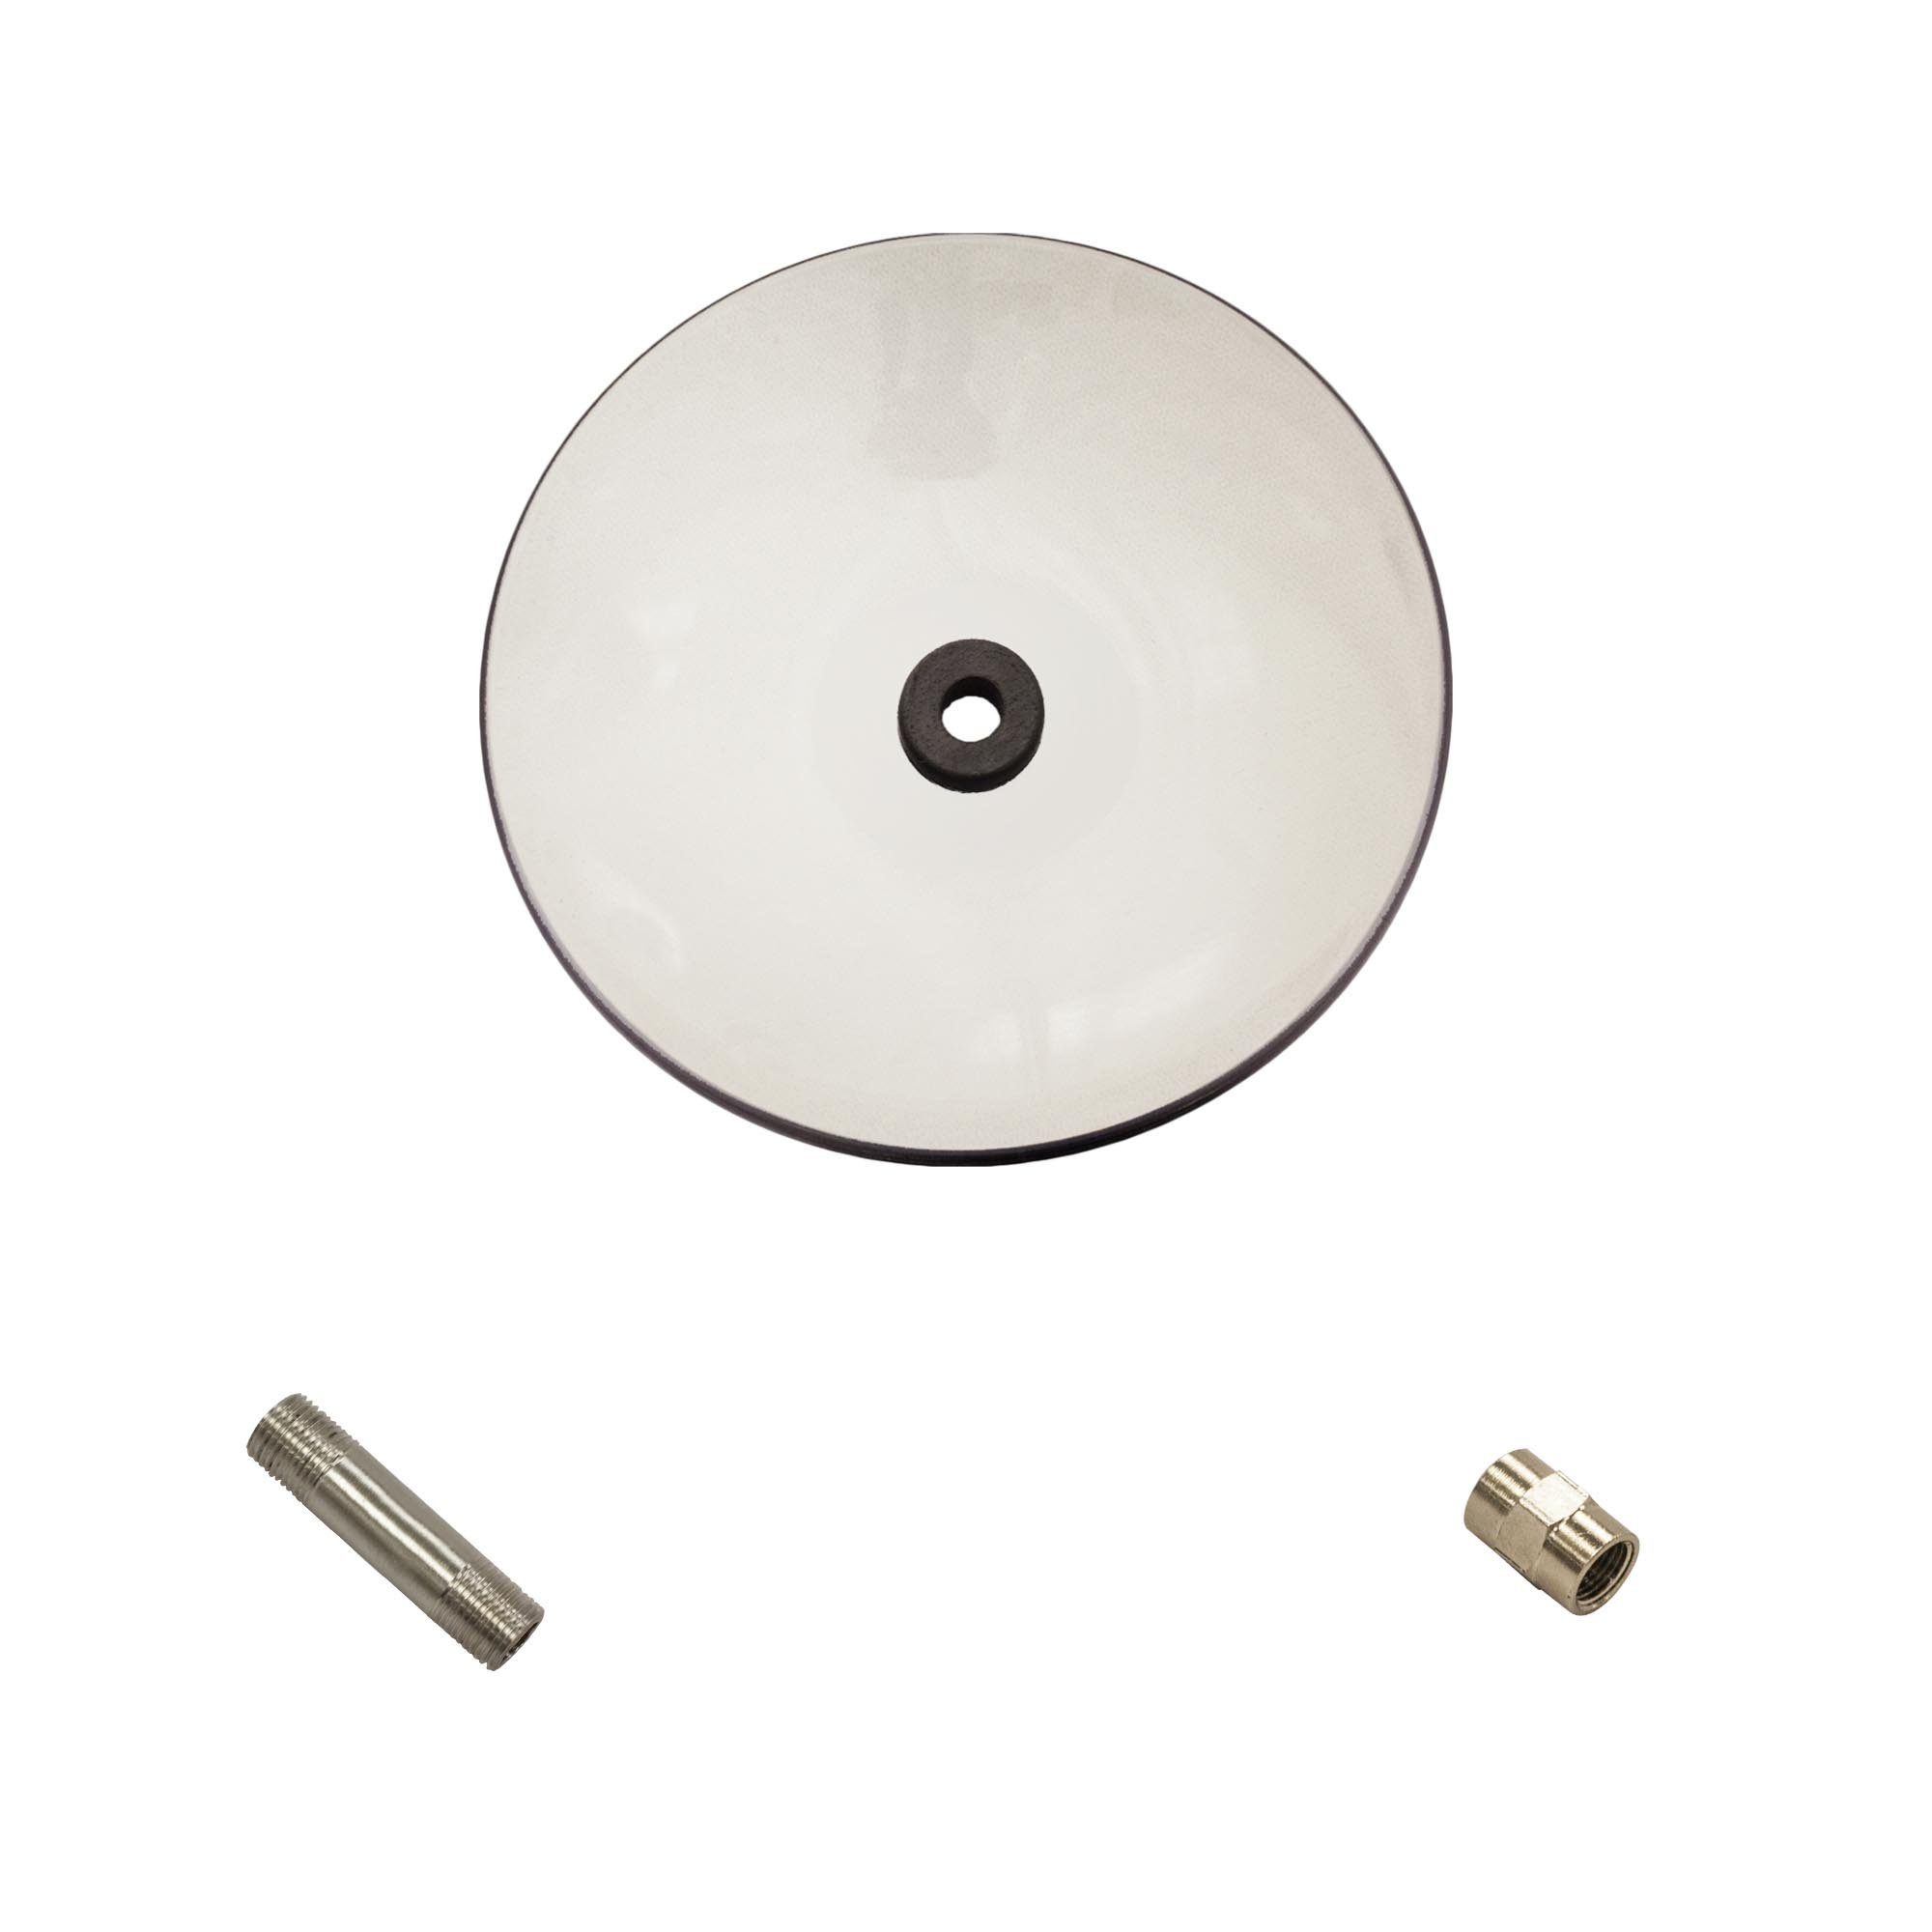 Model 901231 Retrofit Kit for Chip Shield for Safety Air Guns with 1/8 NPT ext